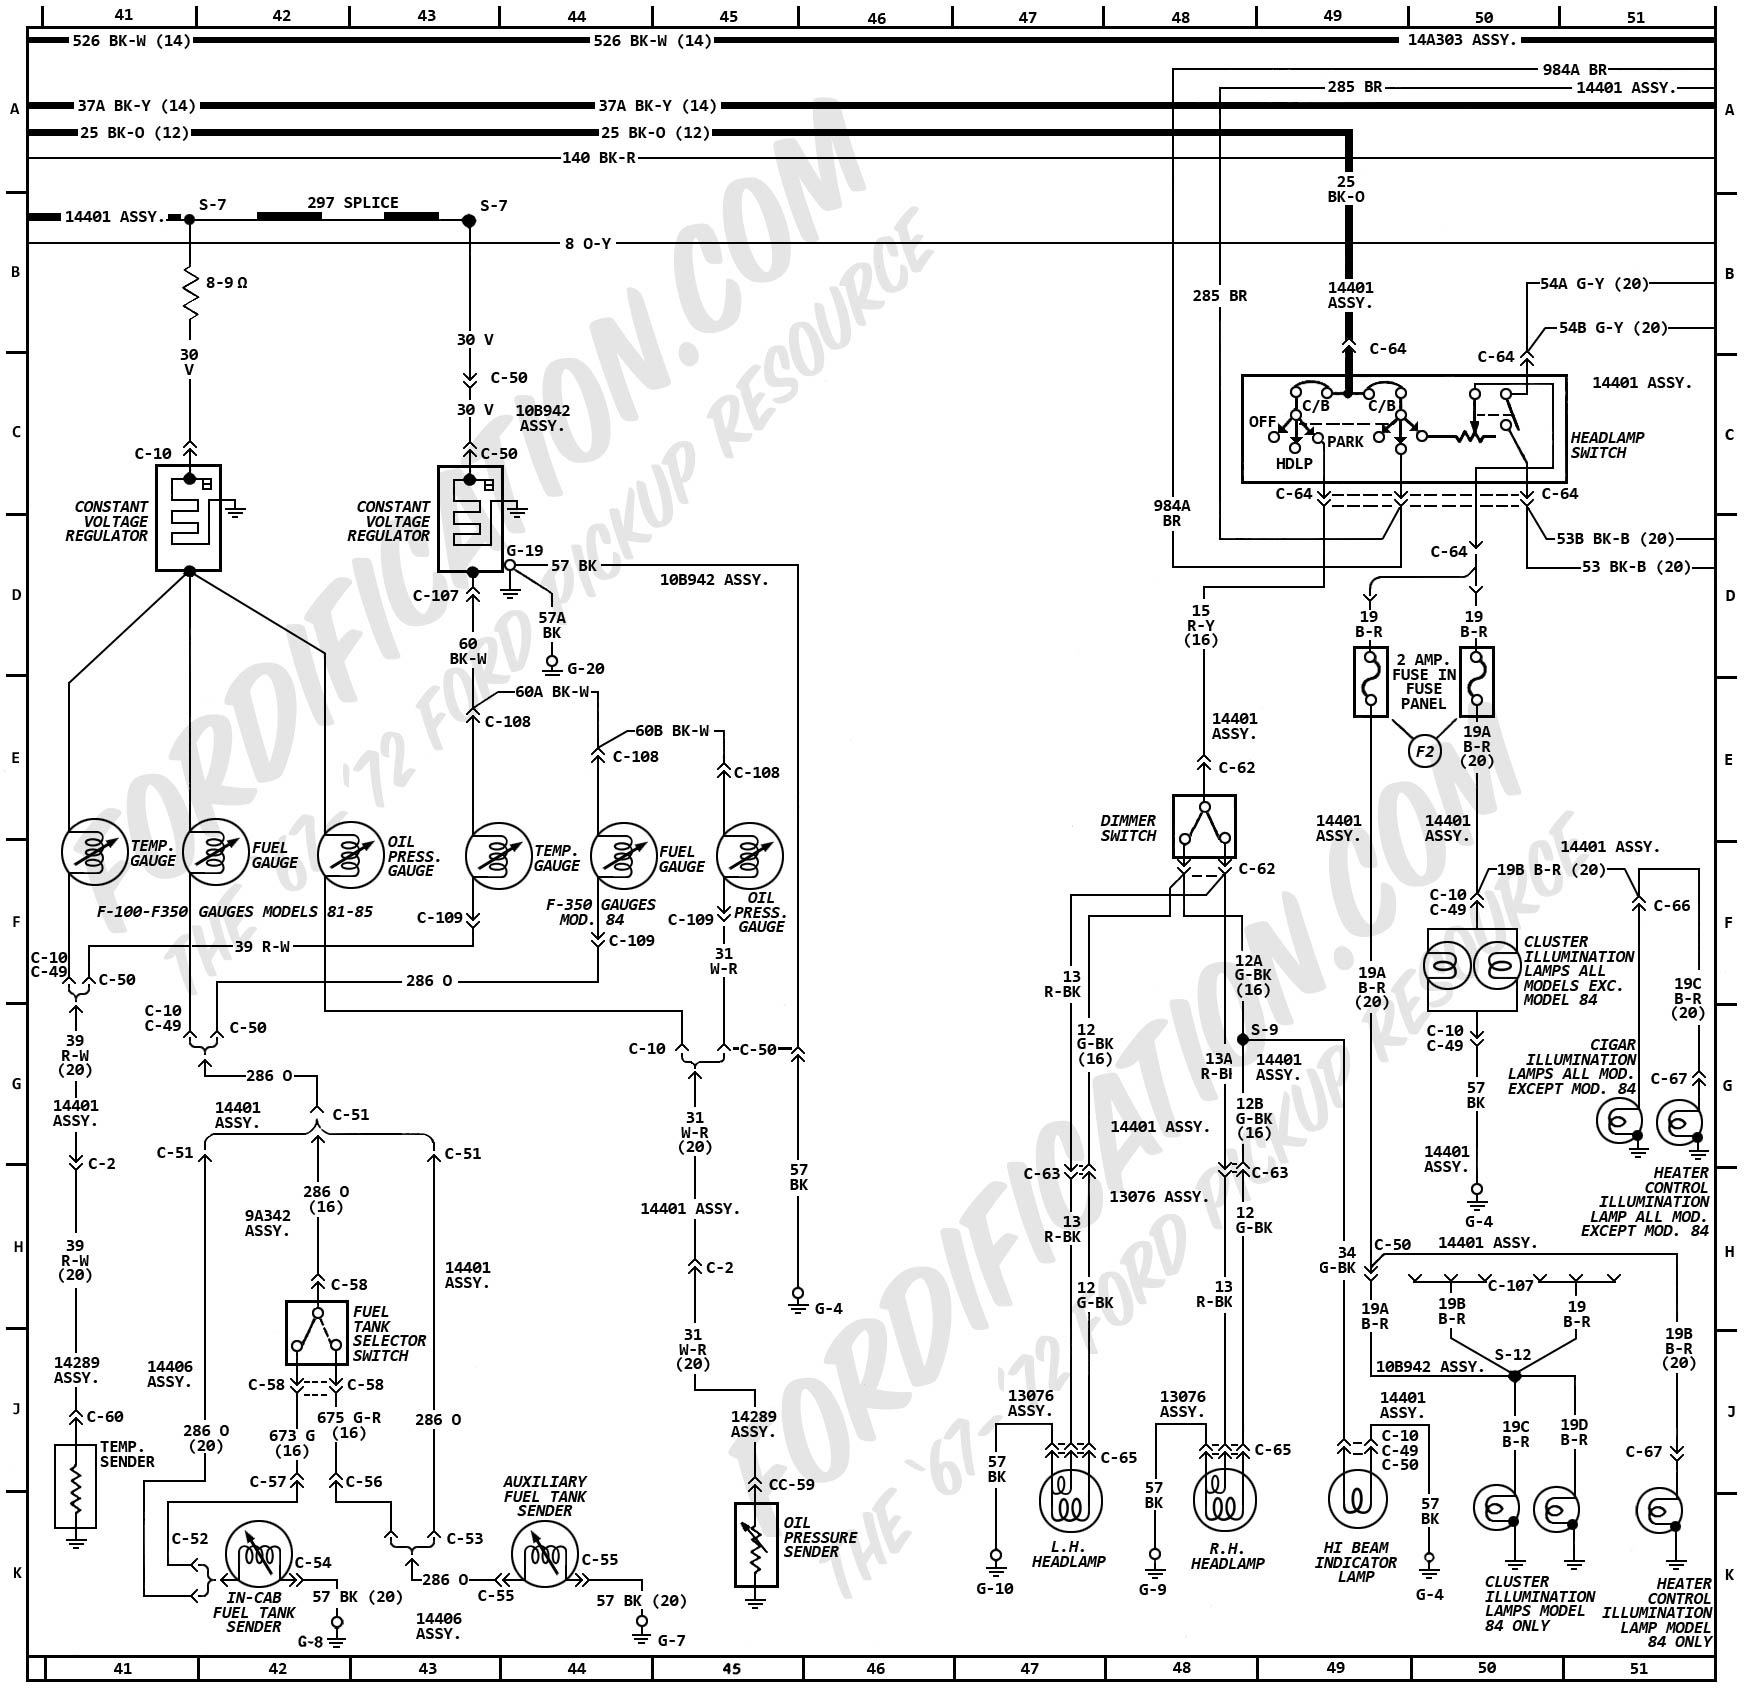 1972 ford f 250 wiper switch wiring diagram    1972       ford    truck    wiring    diagrams fordification com     1972       ford    truck    wiring    diagrams fordification com